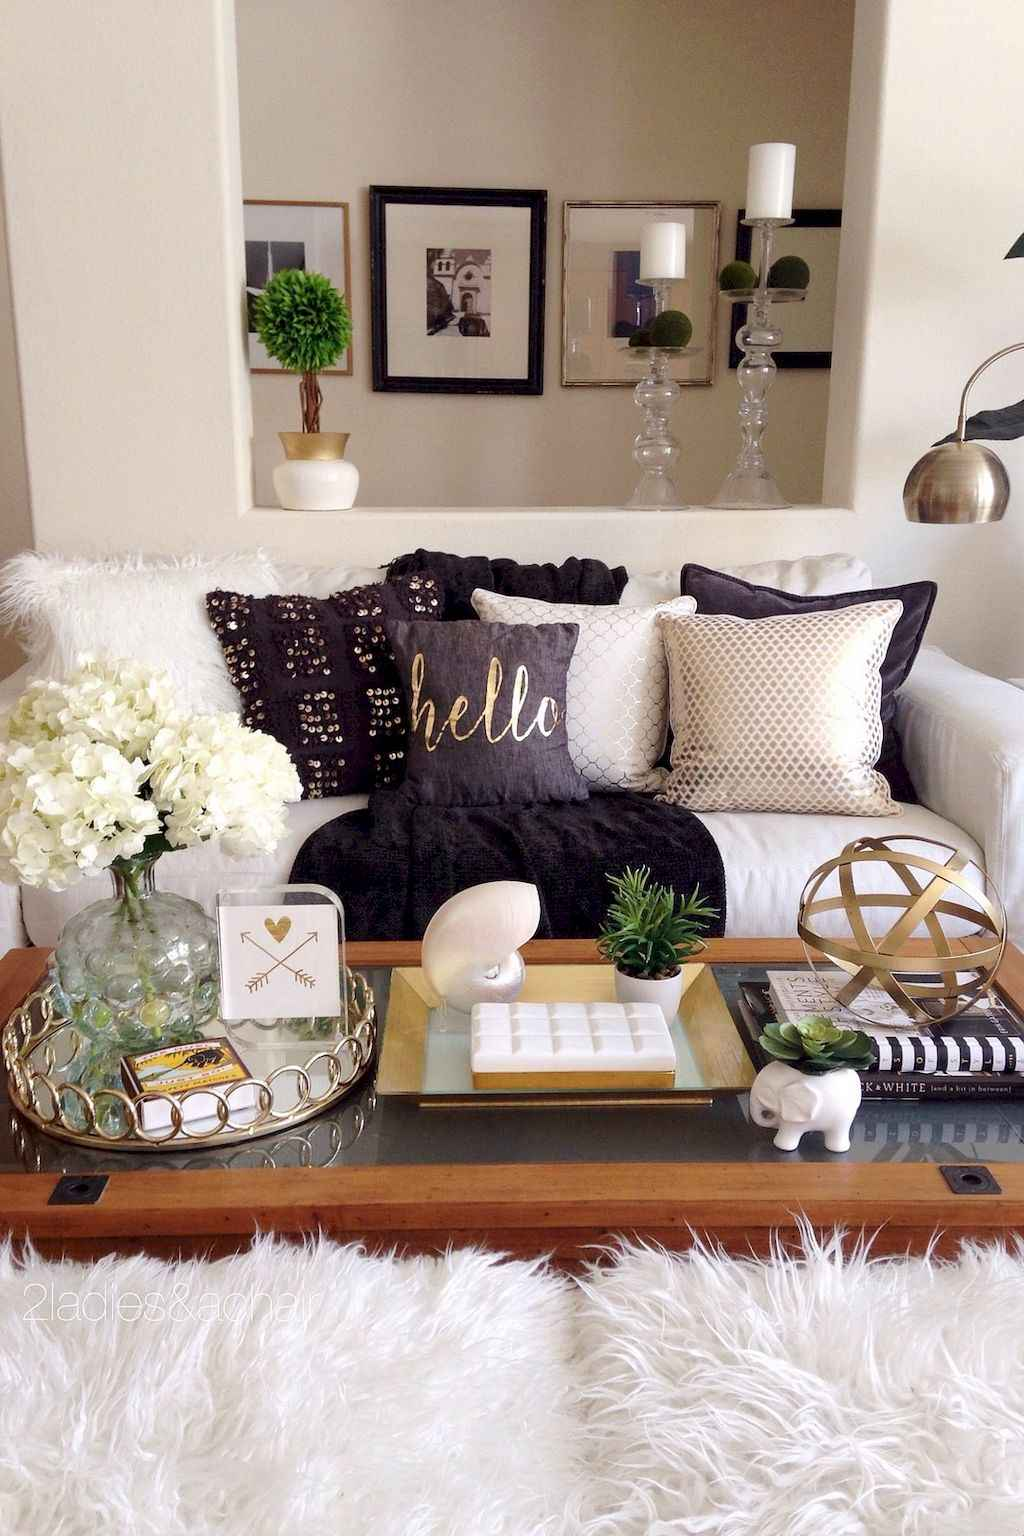 Couples first apartment decorating ideas (32)